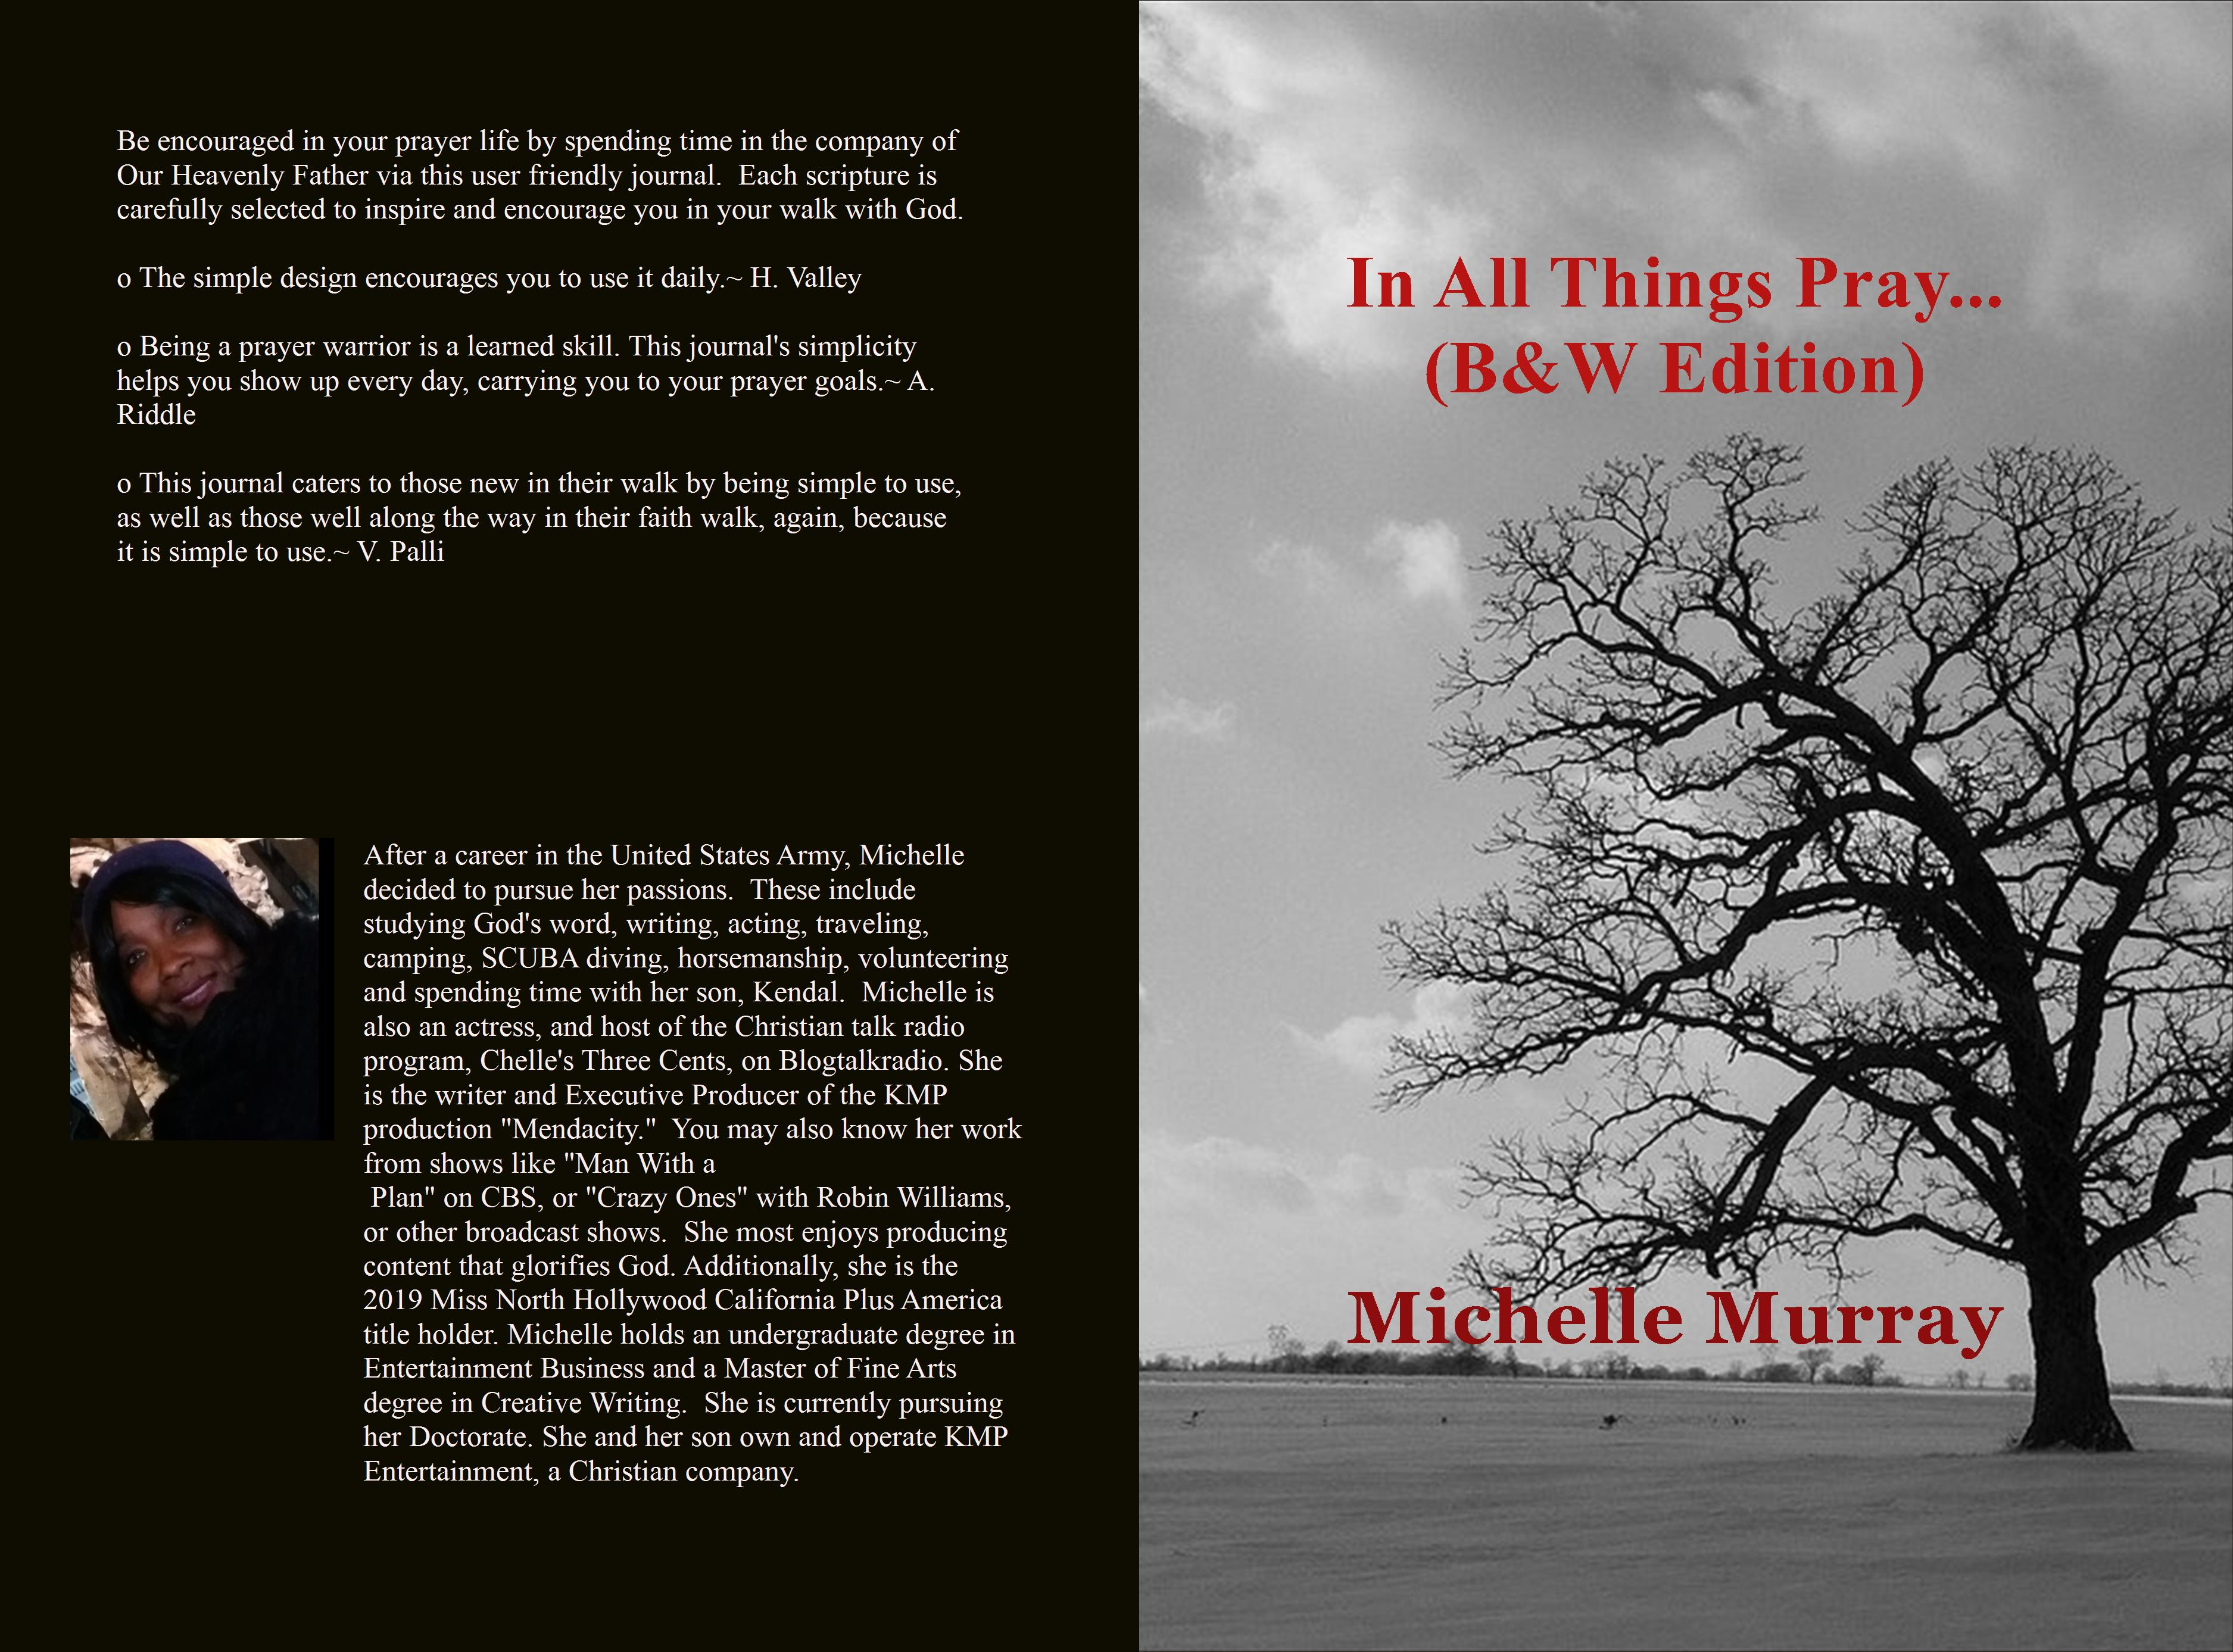 In All Things Pray (B&W Edition) cover image